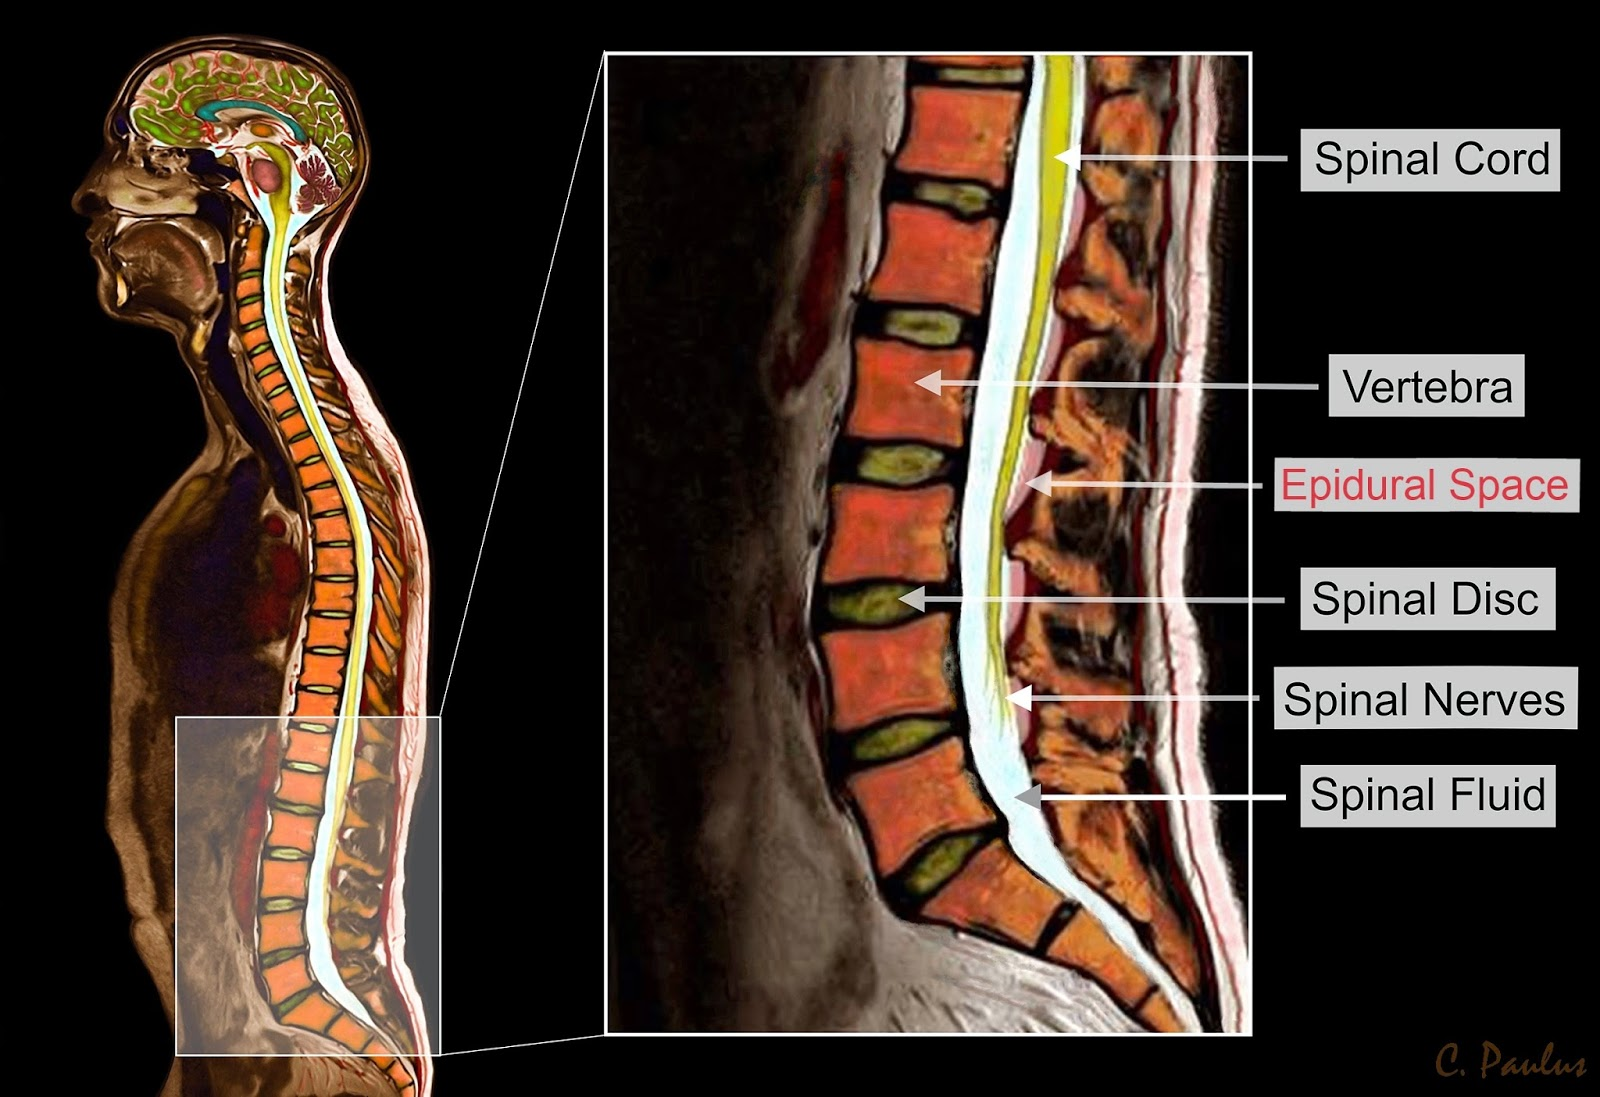 Color MRI Lumbar Spine Anatomy